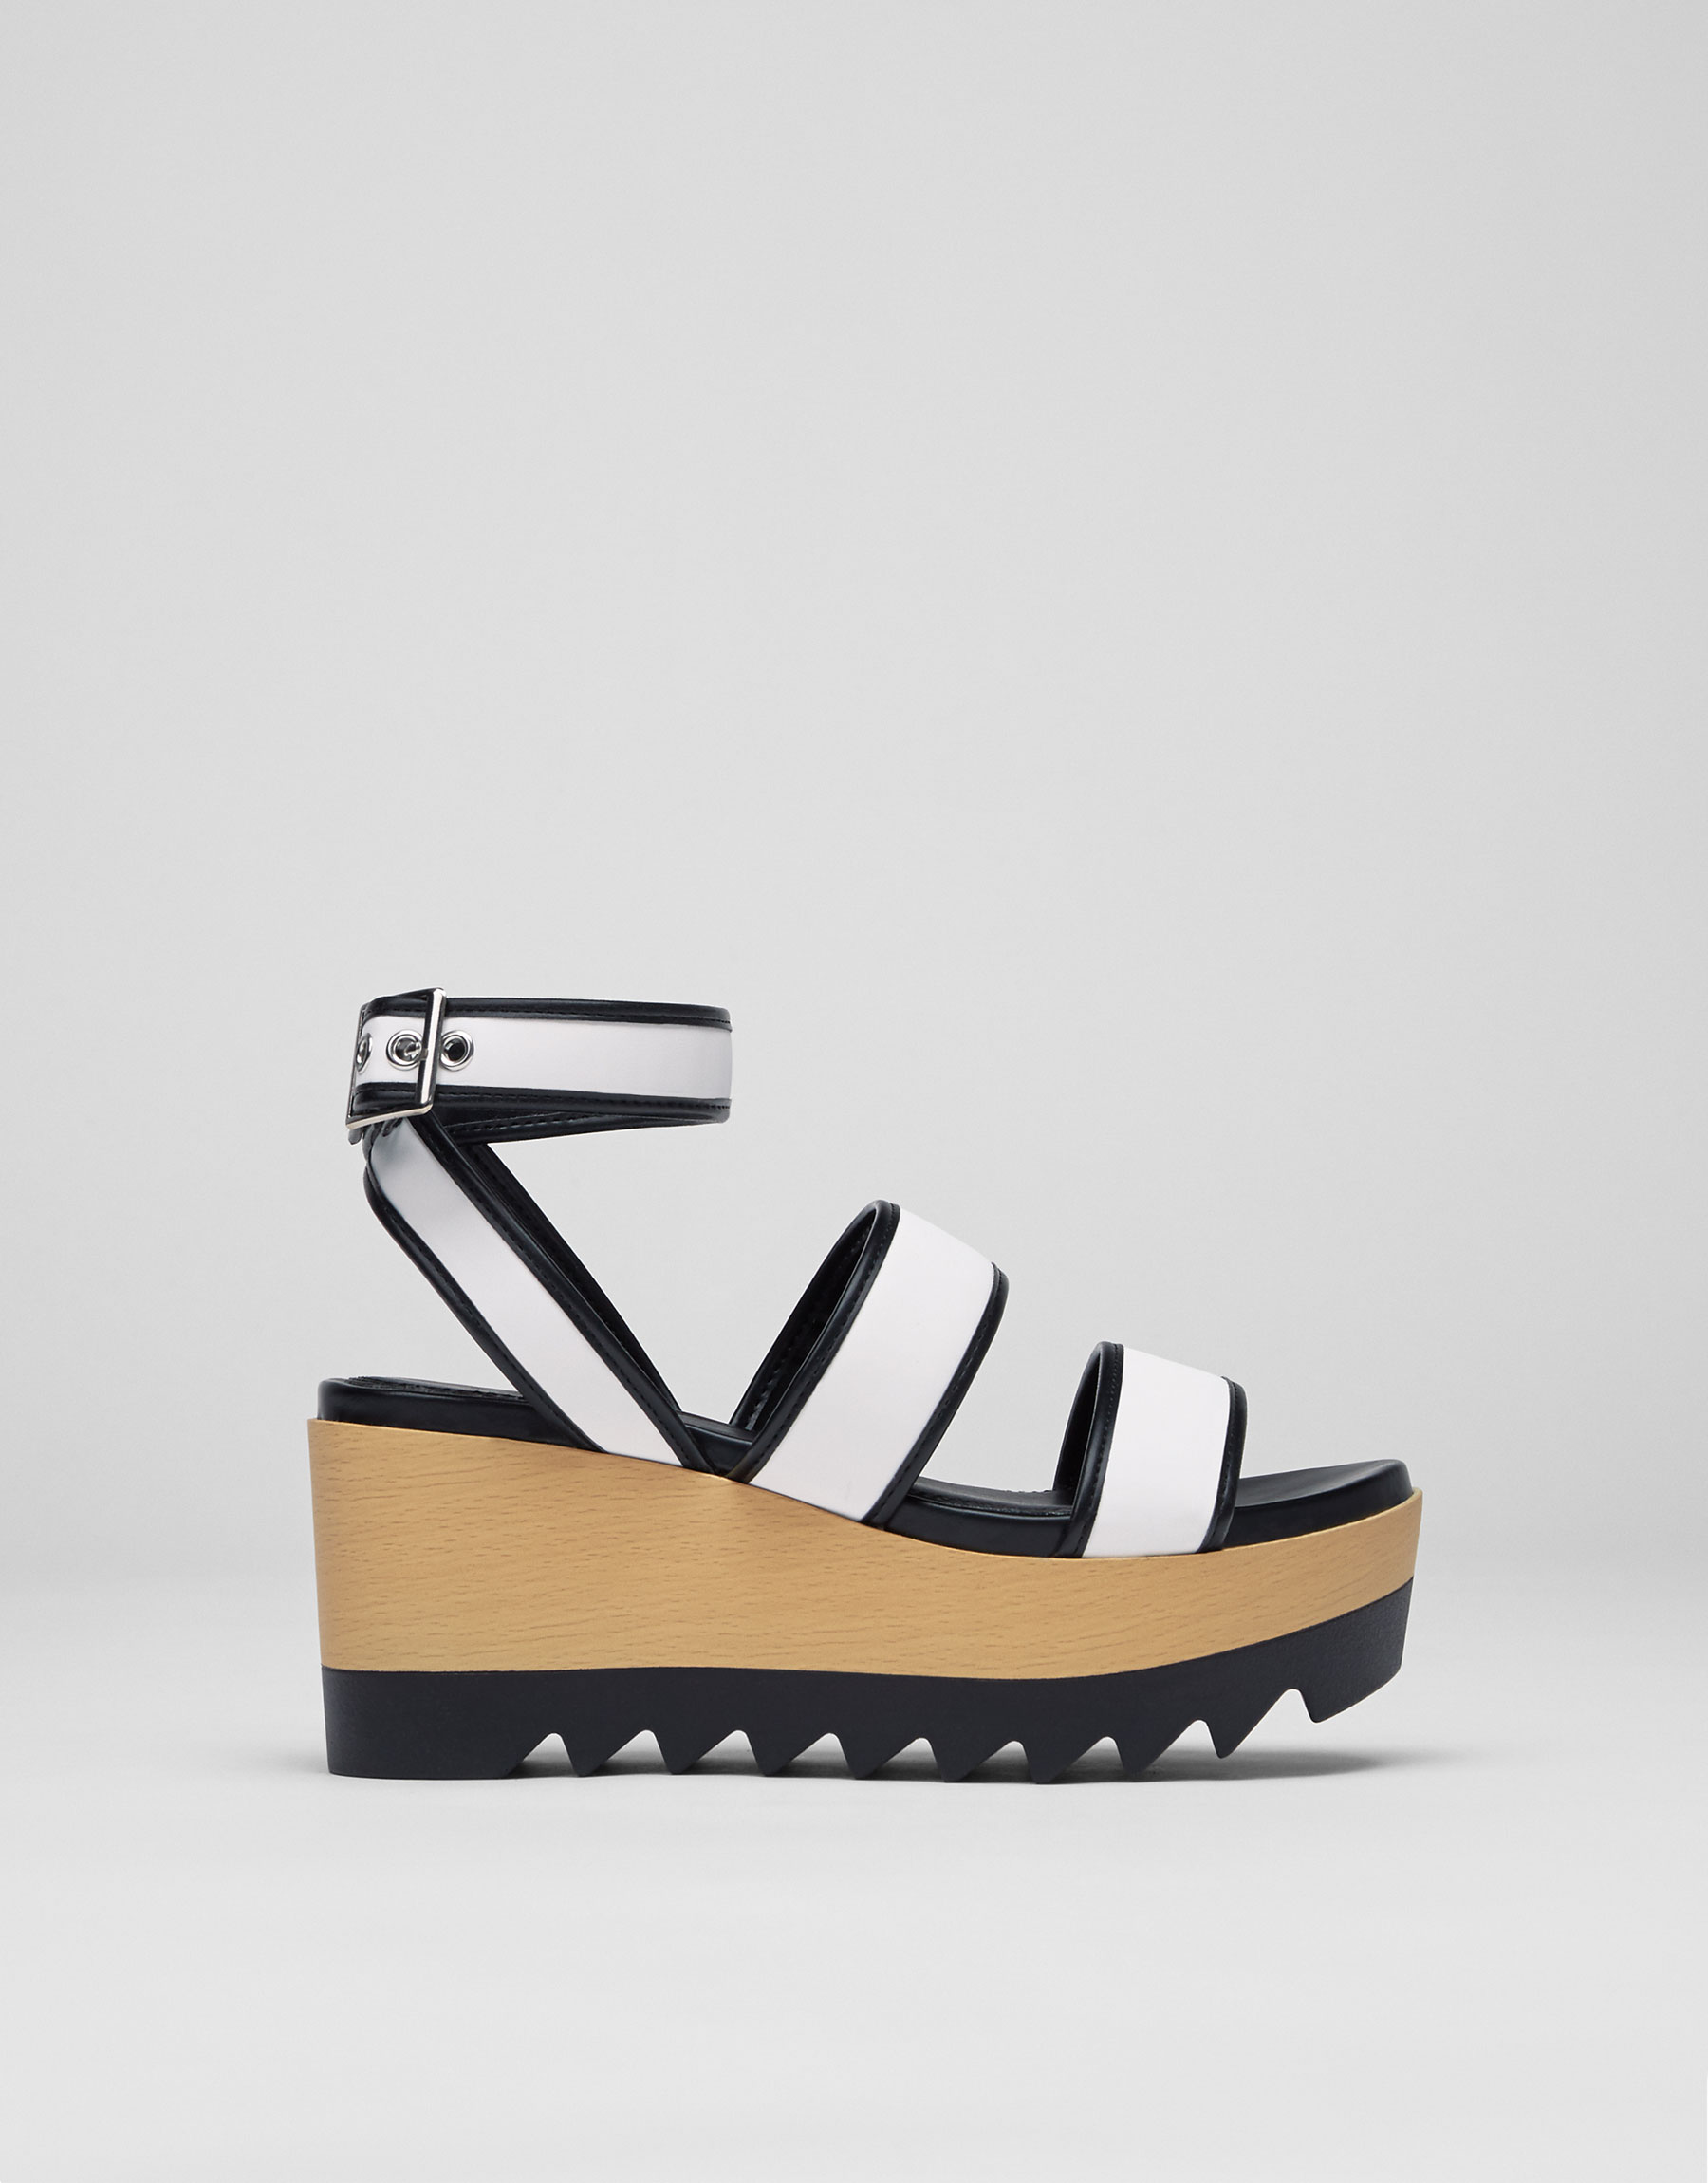 Two-tone wedges